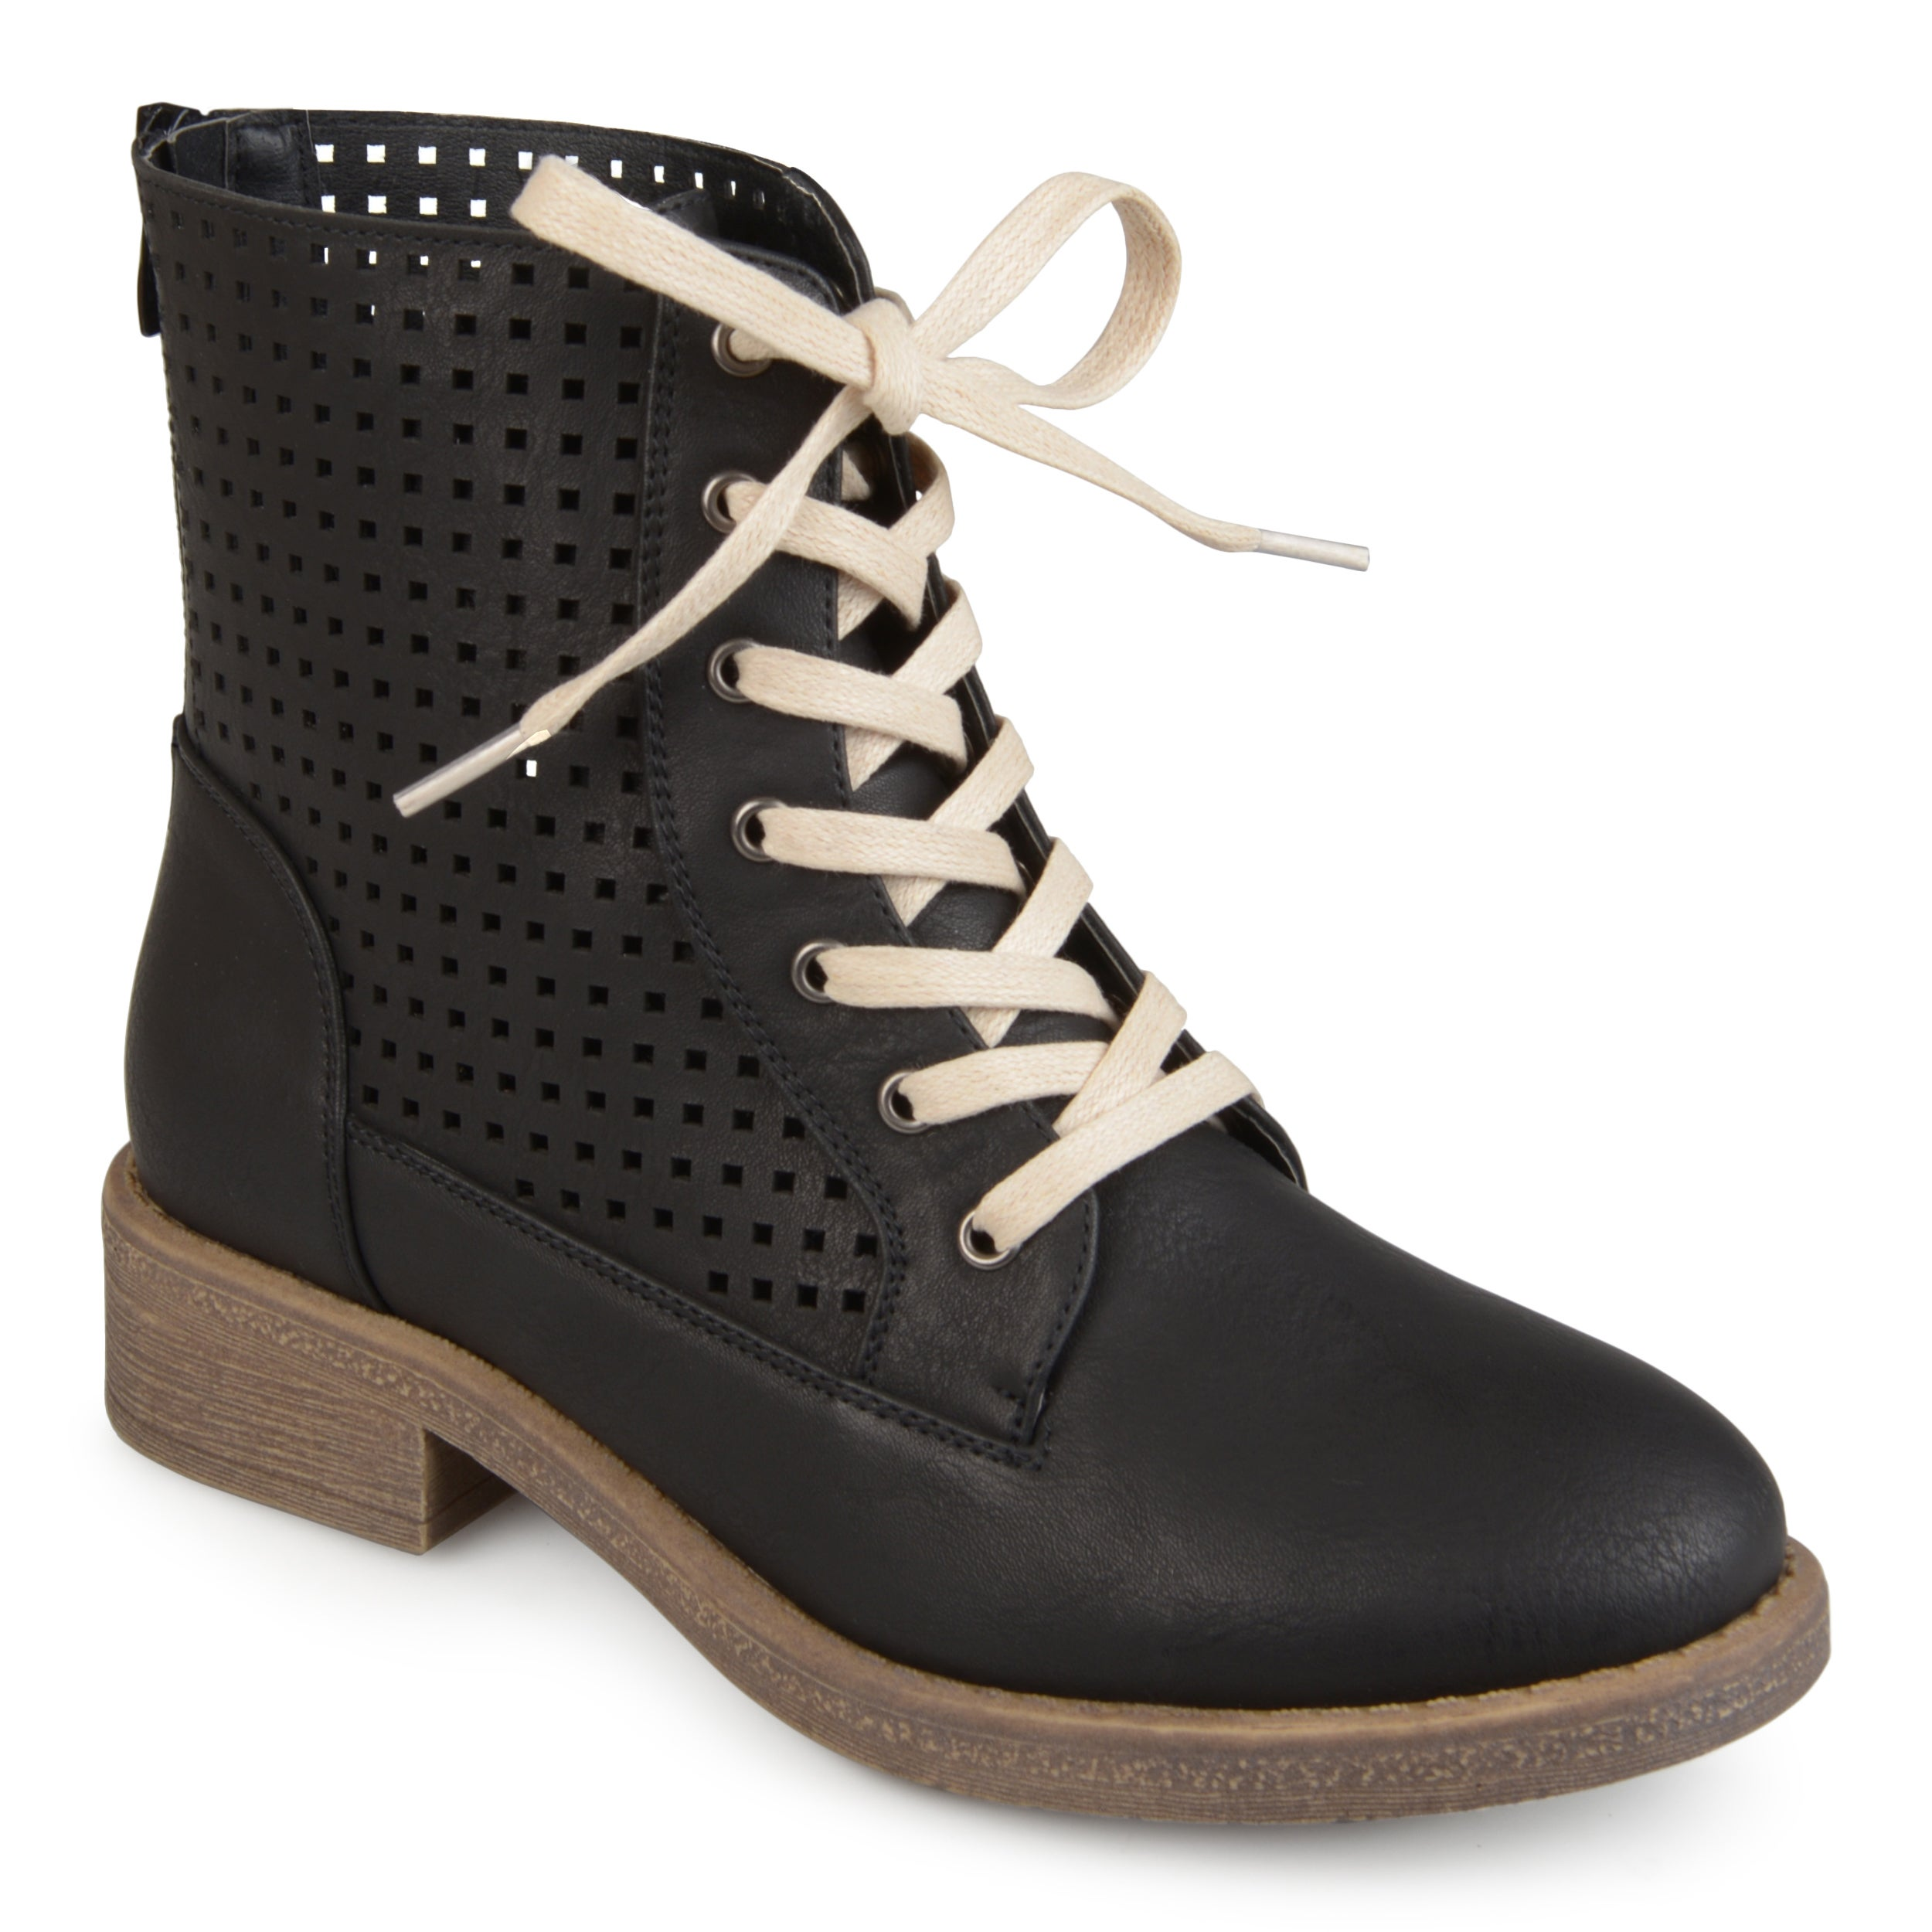 really sale online Journee Collection Essex ... Women's Ankle Boots cheap supply online cheap online VQUZJFUo